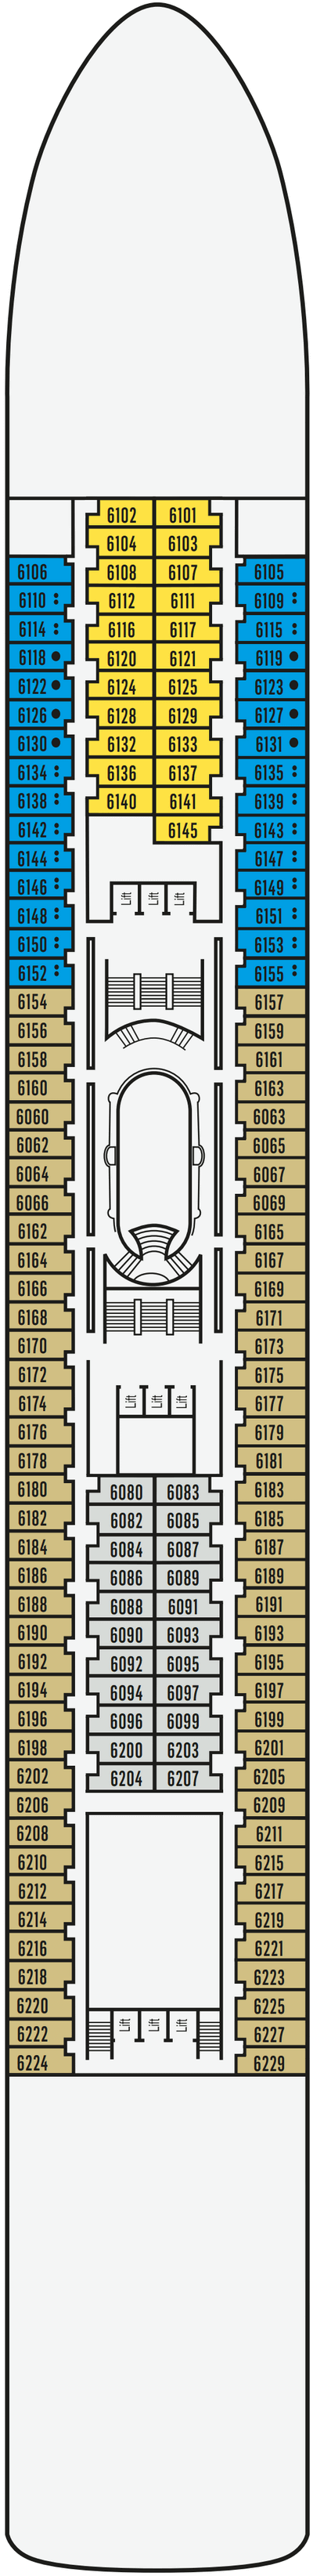 P&O - Pacific Jewel Deck 6 layout